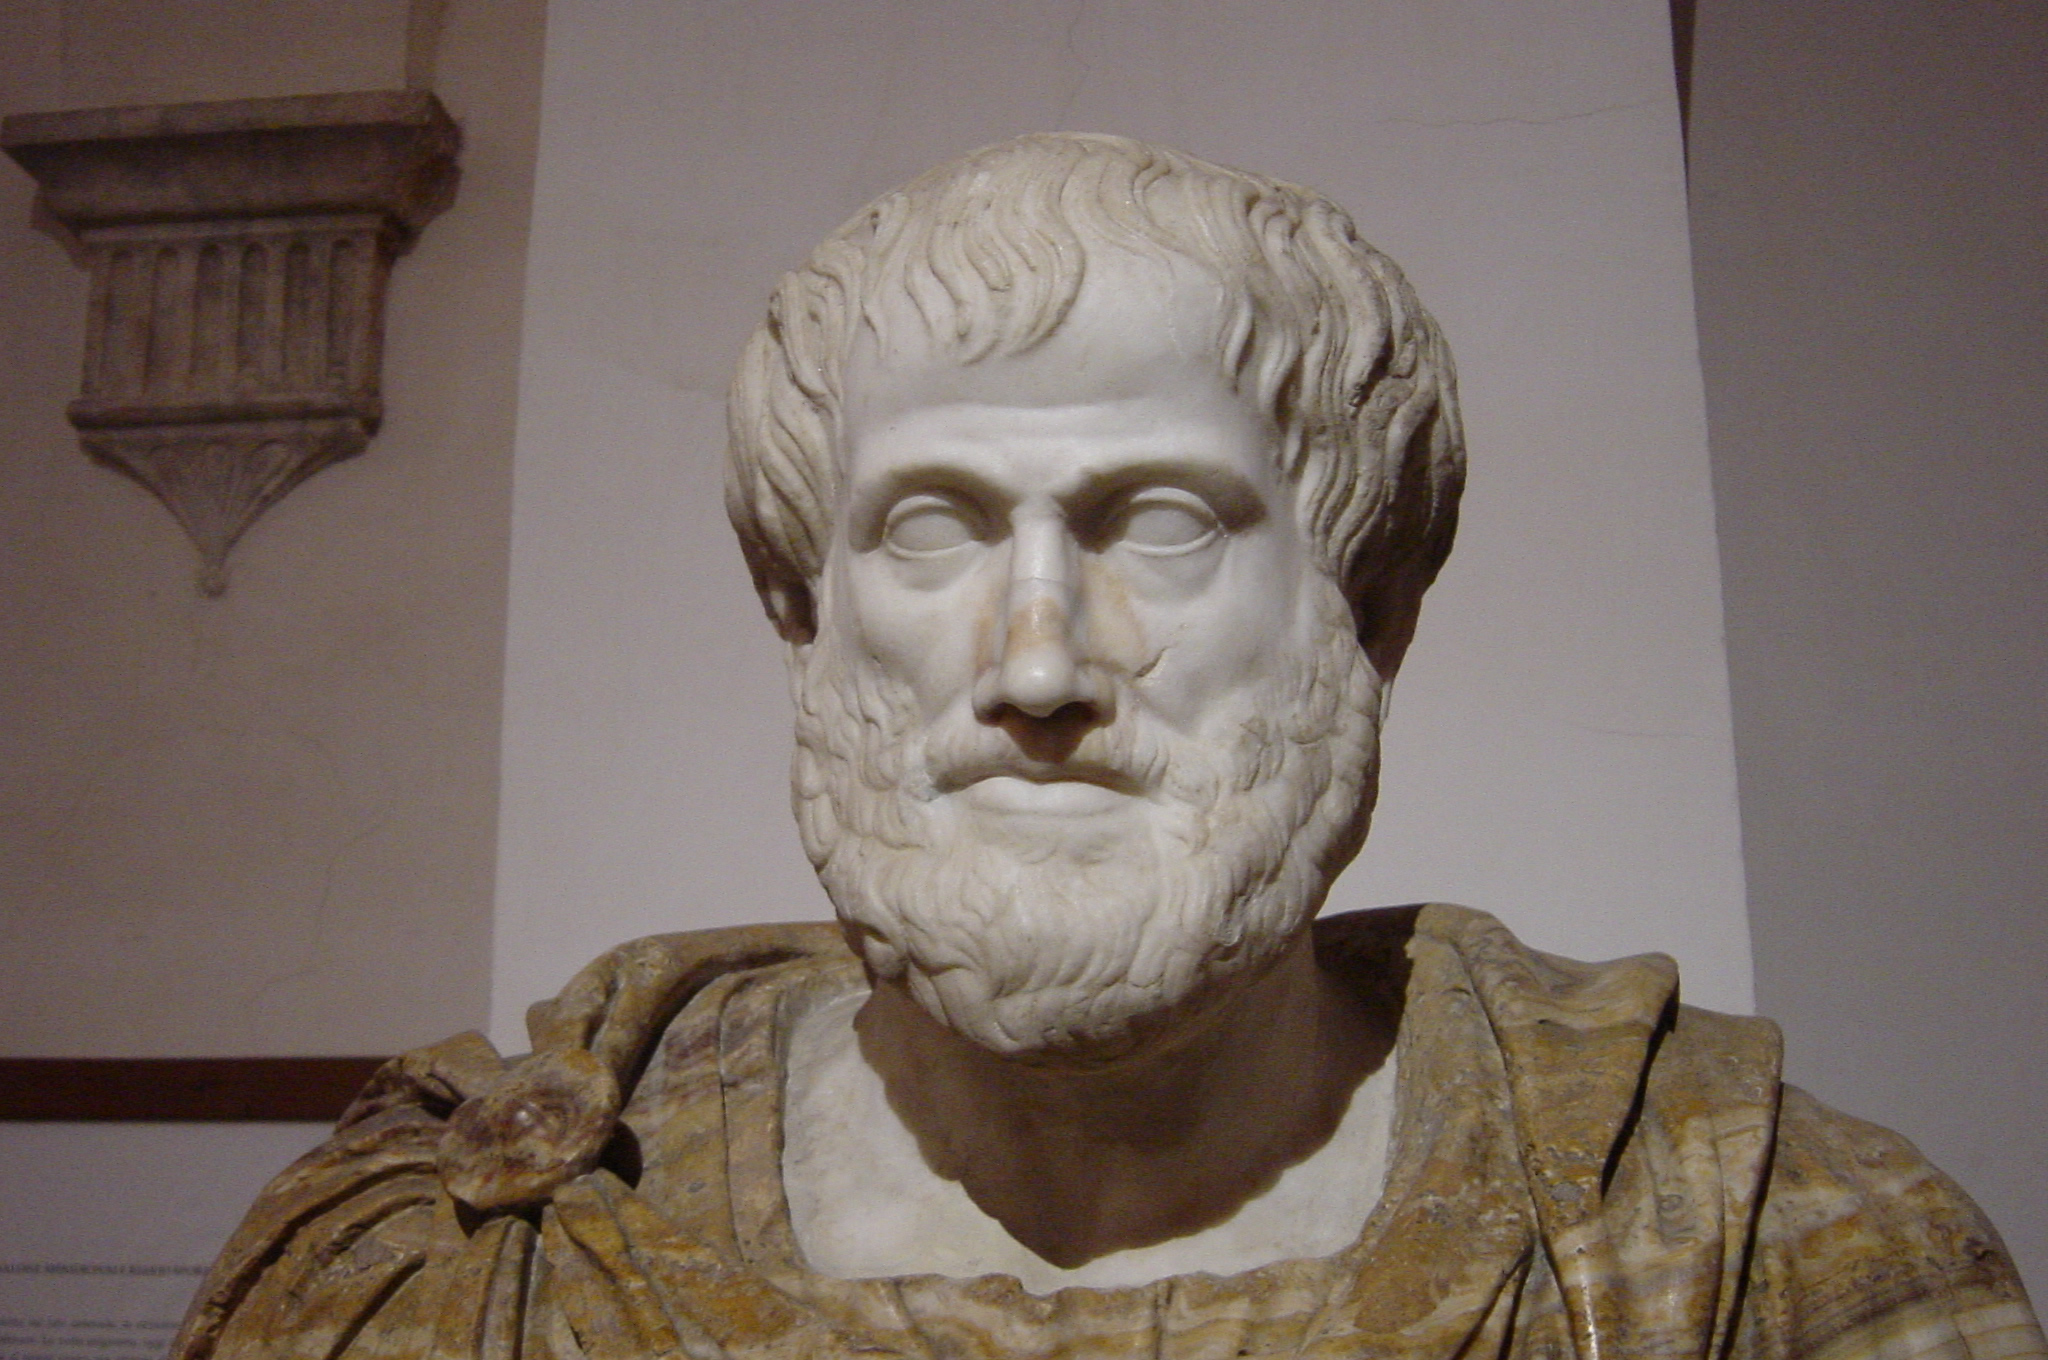 Bust of Aristotle. Marble, Roman copy after a Greek bronze original by Lysippos from 330 BC. National Museum of Rome. Photo: Giovanni Dall'Orto